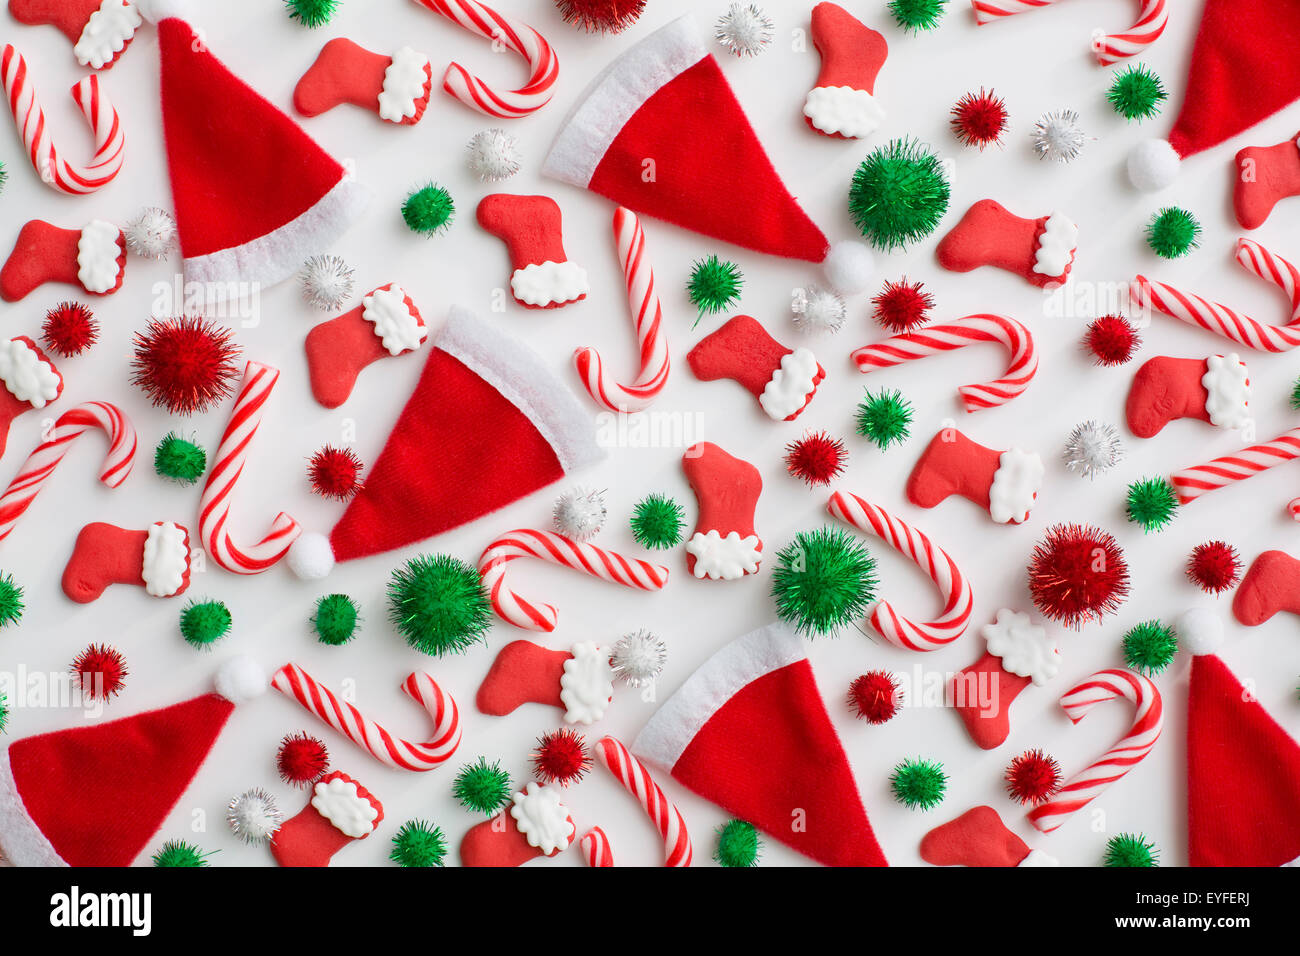 Christmas decoration of santa hats, candy canes and Christmas stockings - Stock Image